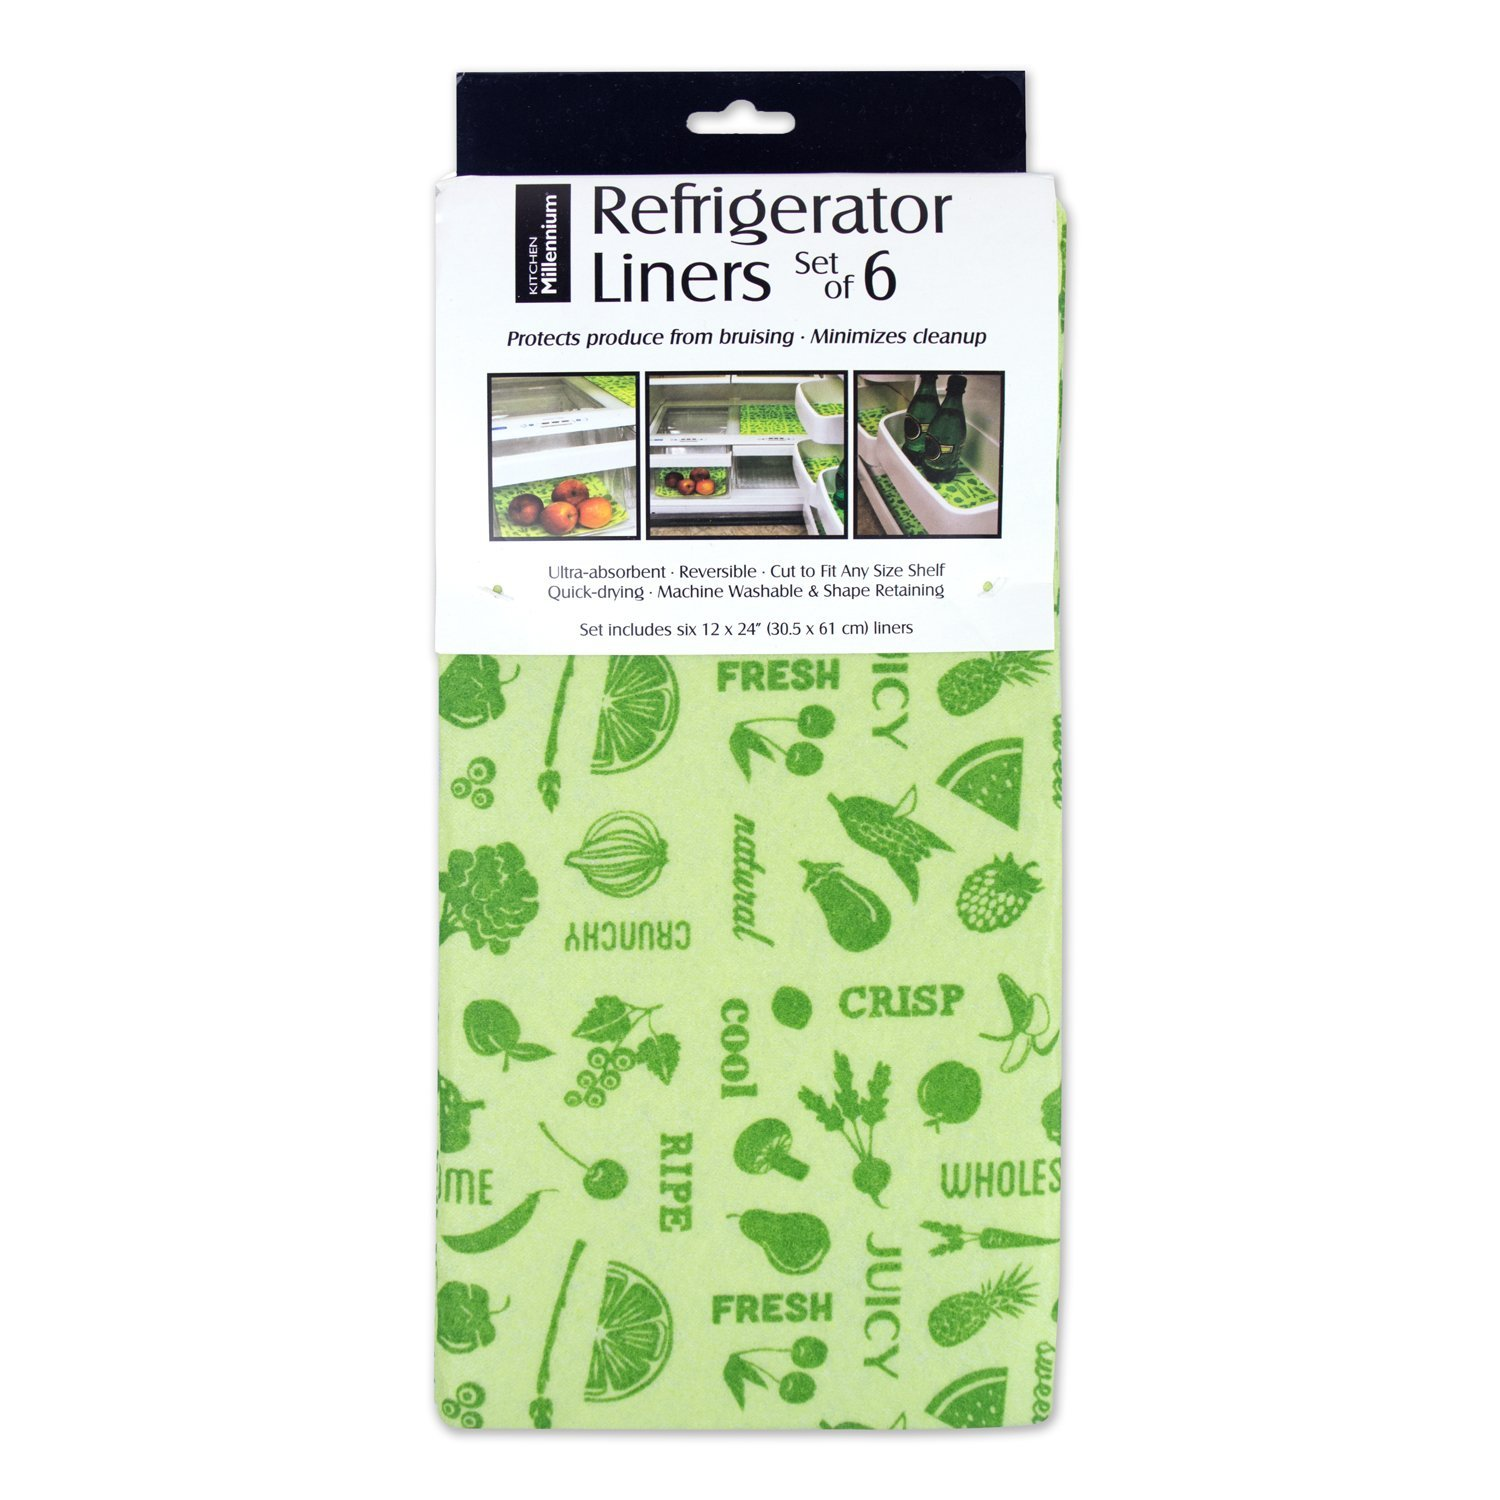 "DII Non Adhesive Cut to Fit Machine Washable Fridge Liner For Drawers, Bins, Trays, Protect Produce, Set of 6, 12 x 24"" - Green"